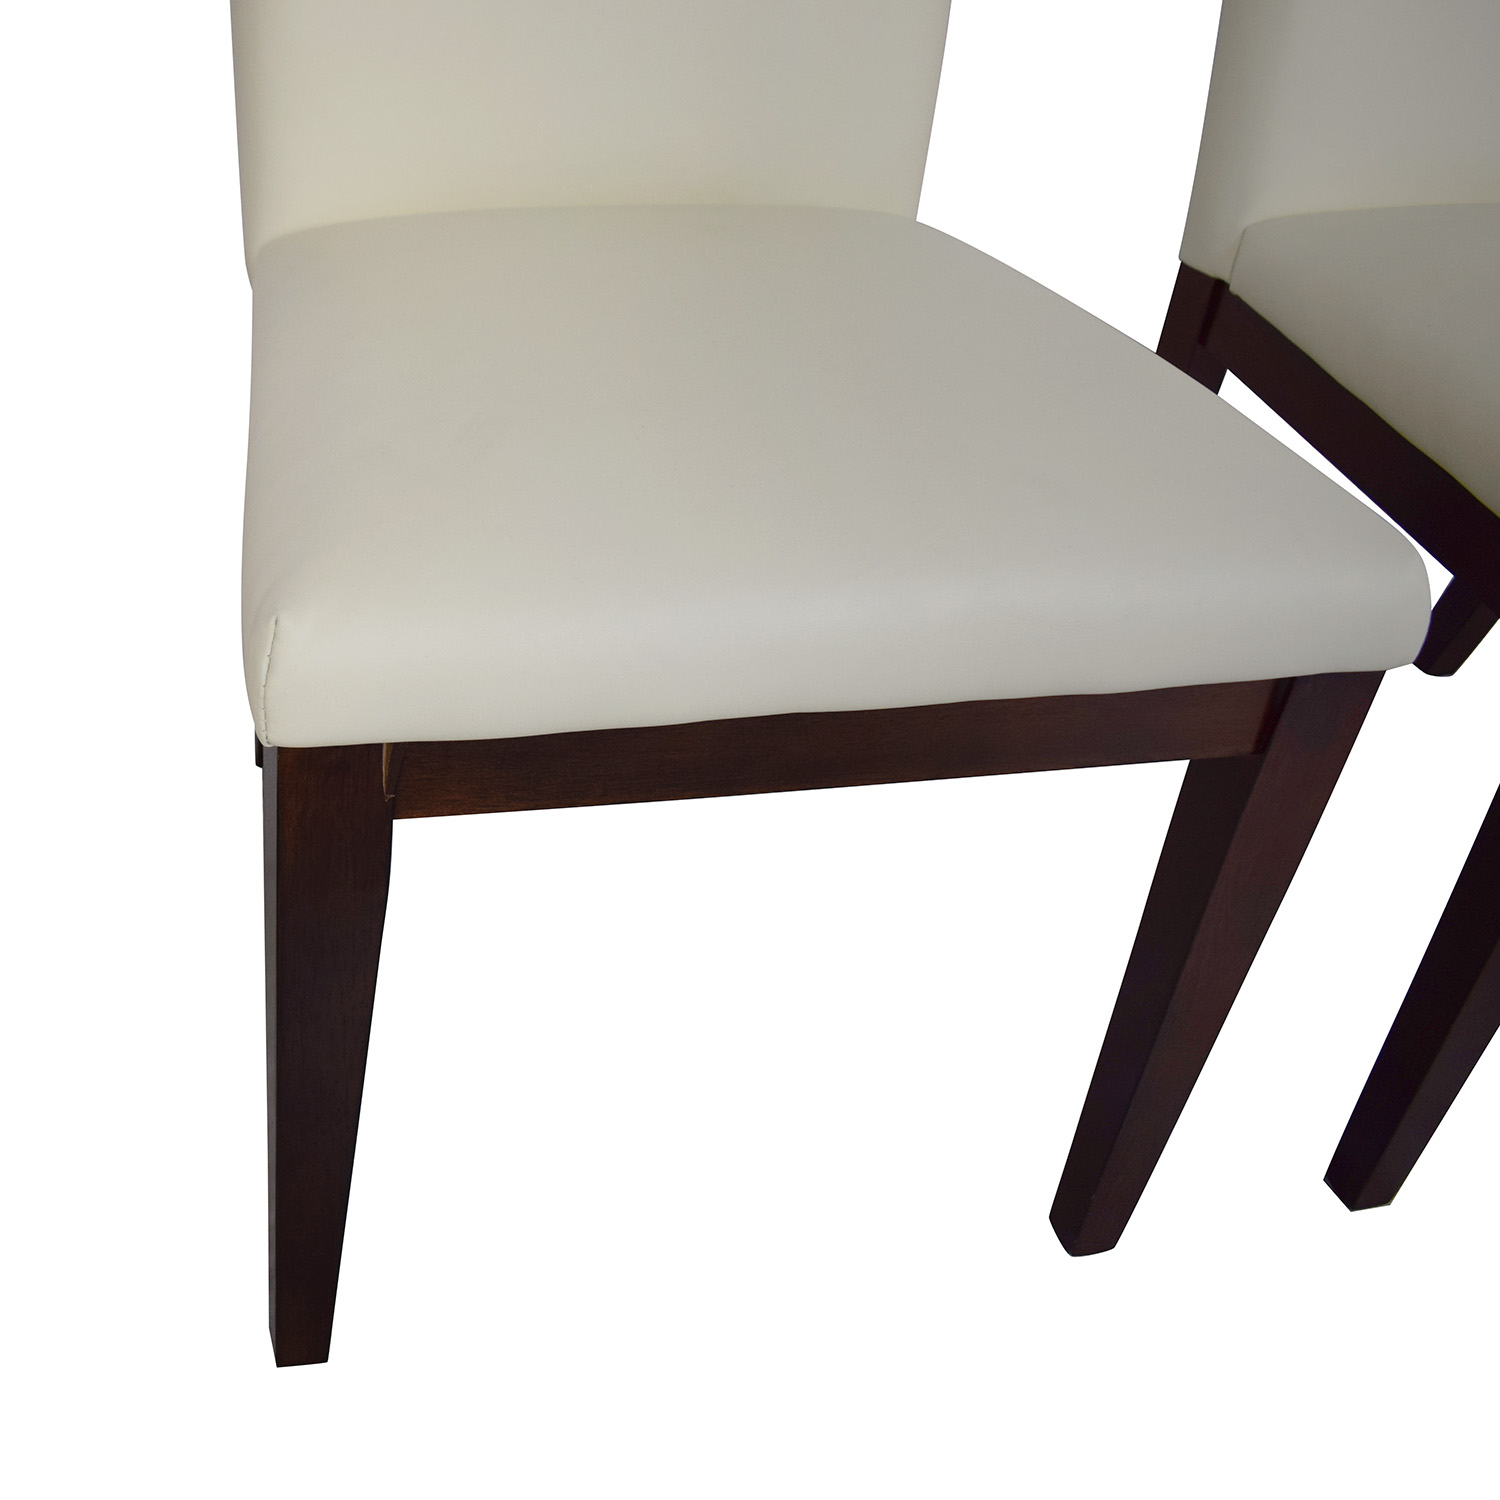 Macy's Macy's Dining Chairs Dining Chairs